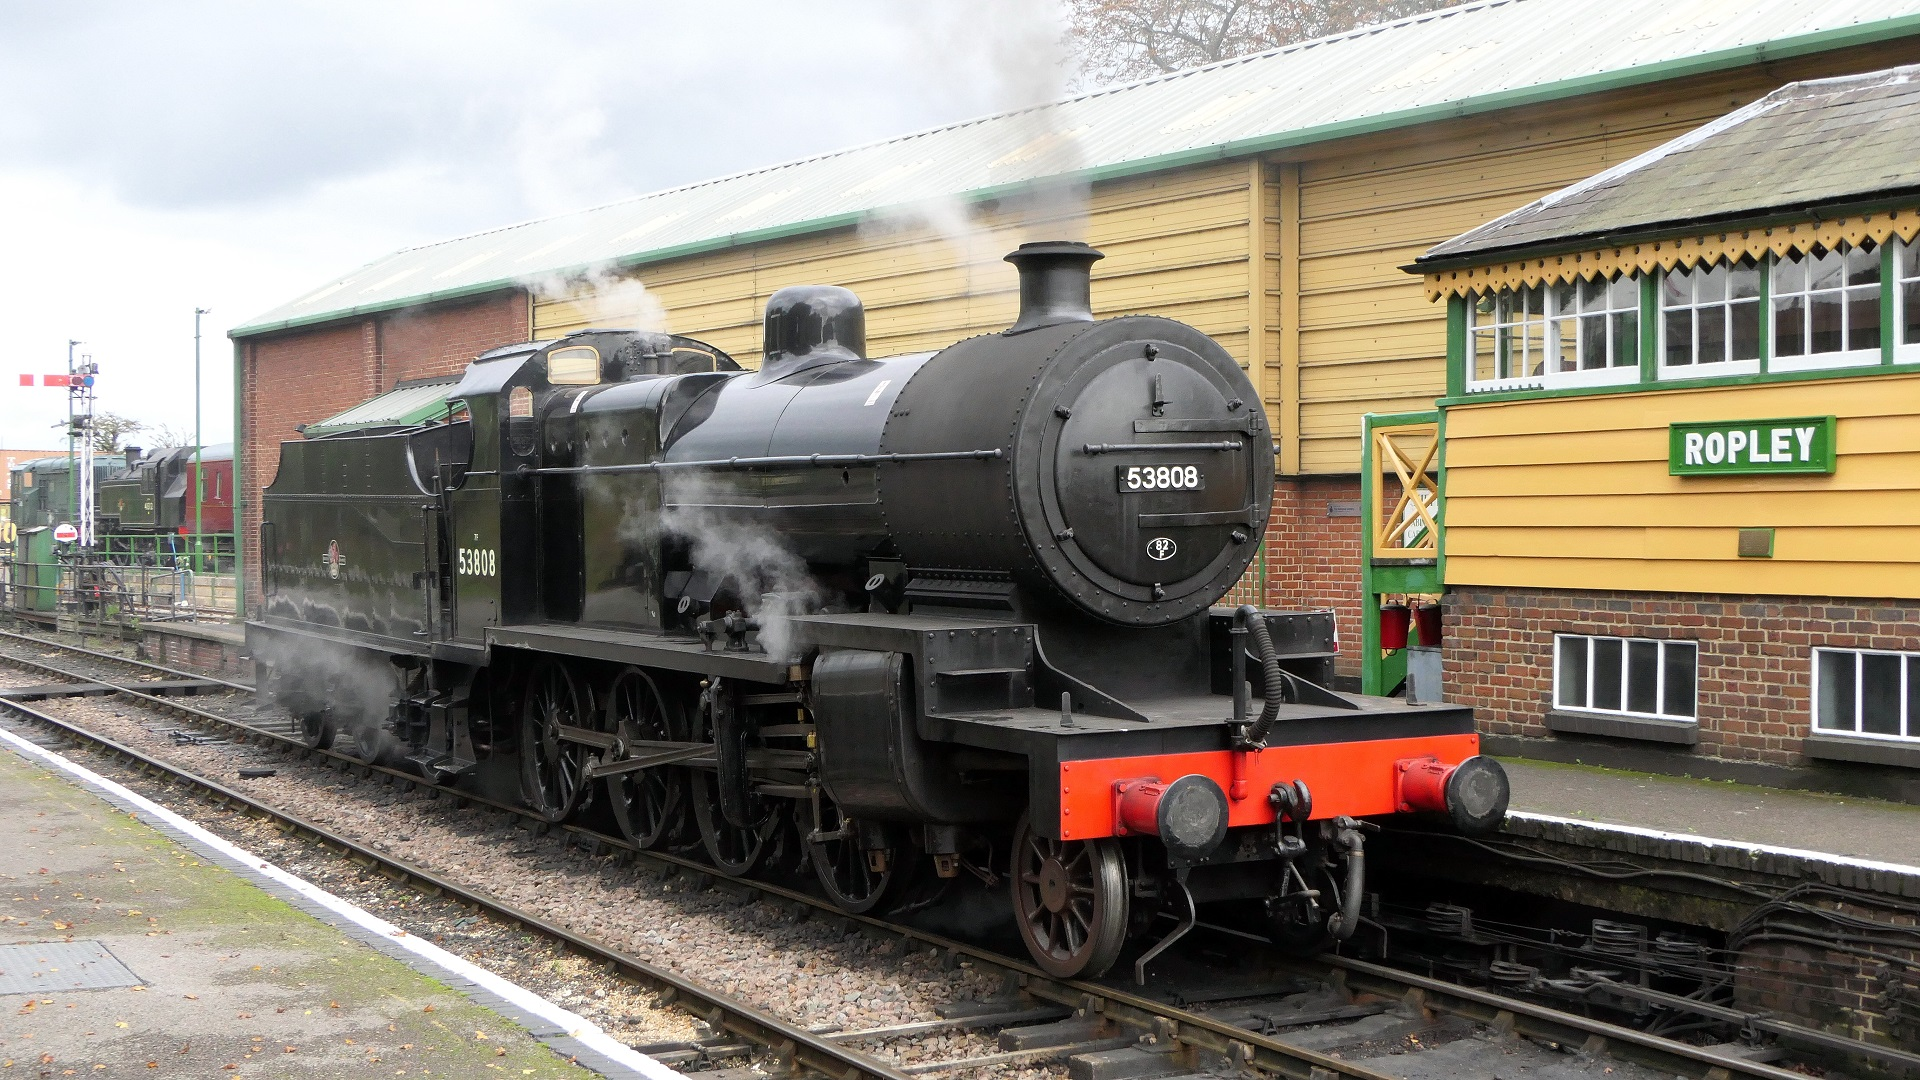 53808 beside the signalbox at Ropley on 13 October